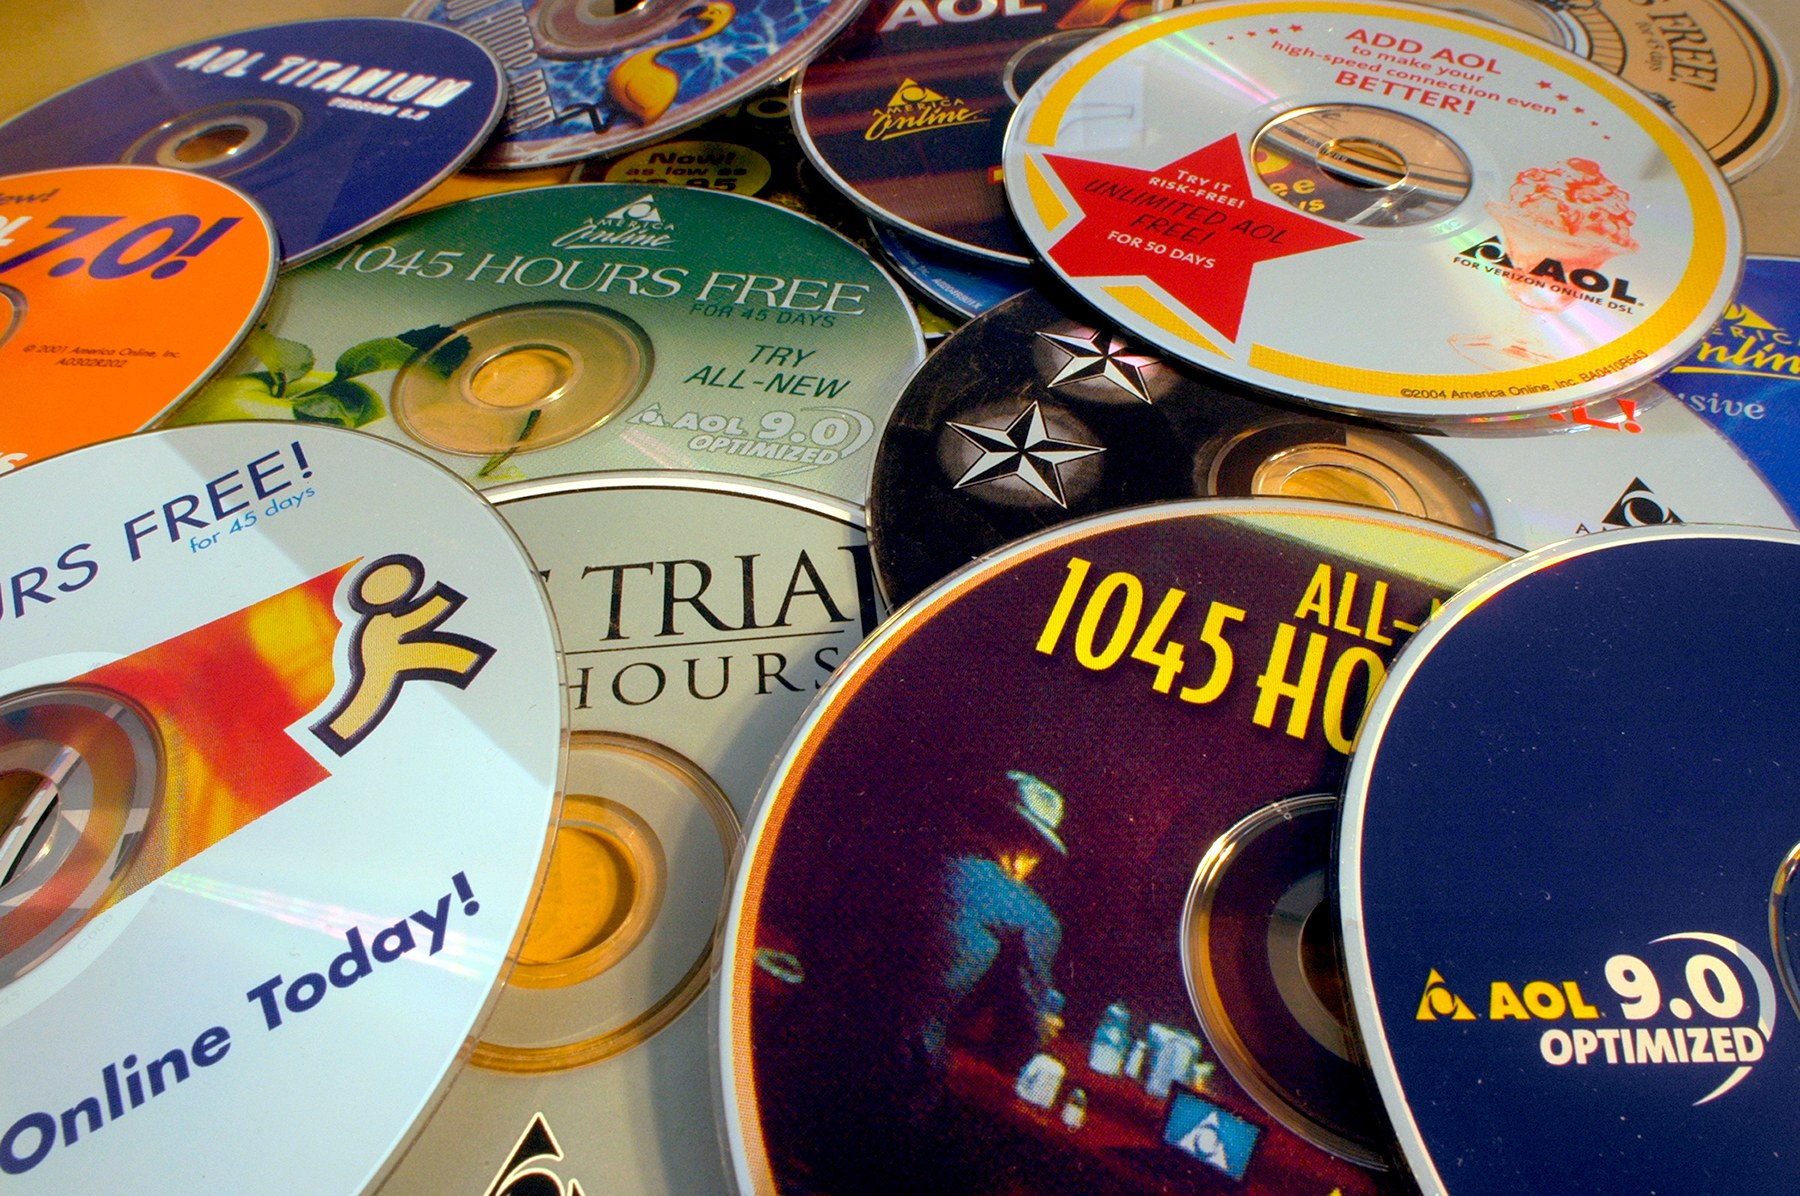 The Internet Archive is collecting AOL free trial CDs